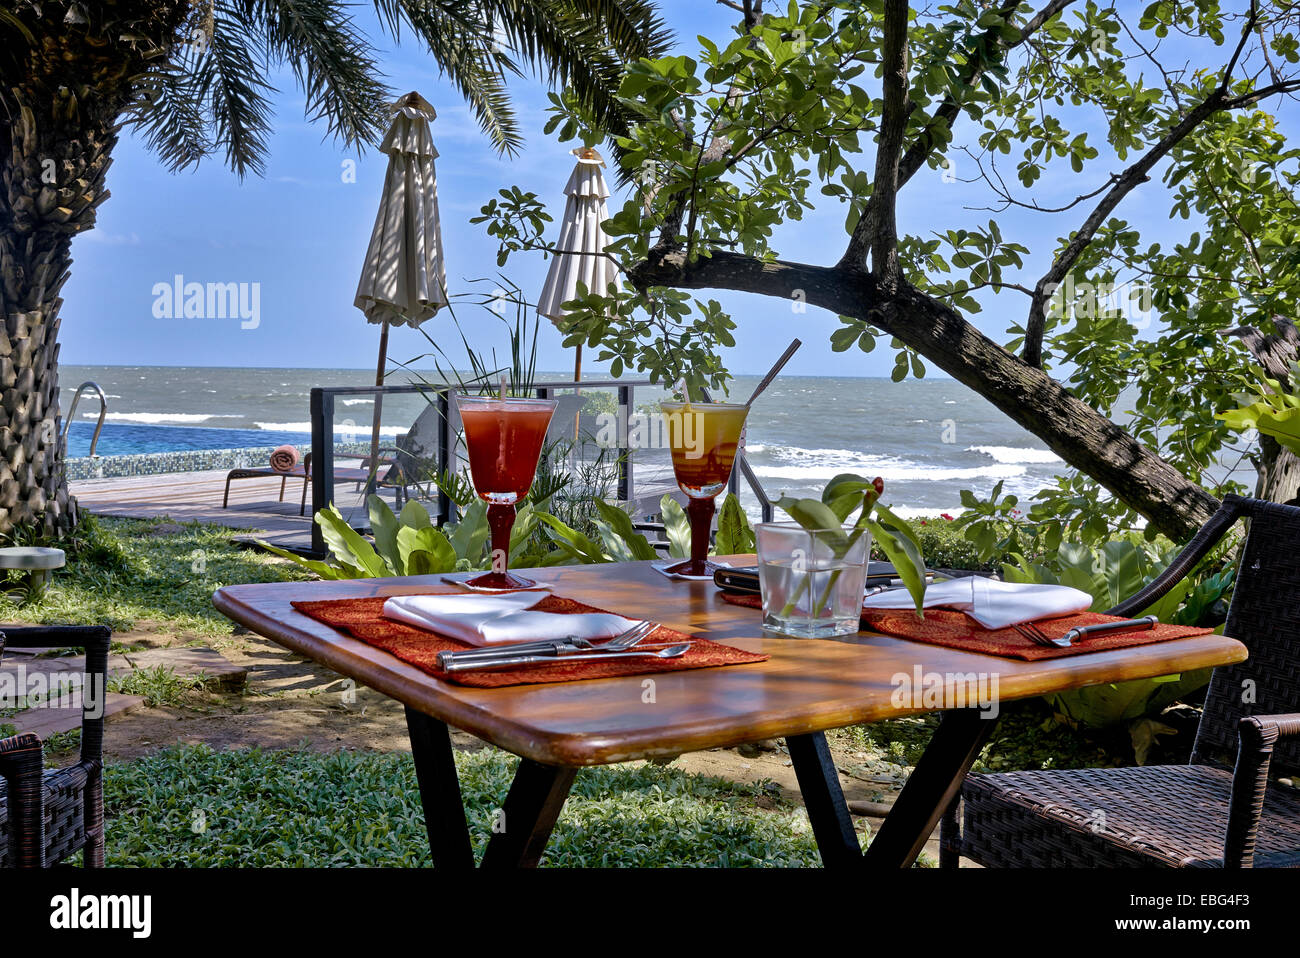 Outdoor dining table set for two in a tropical setting with ocean view thailand s e asia